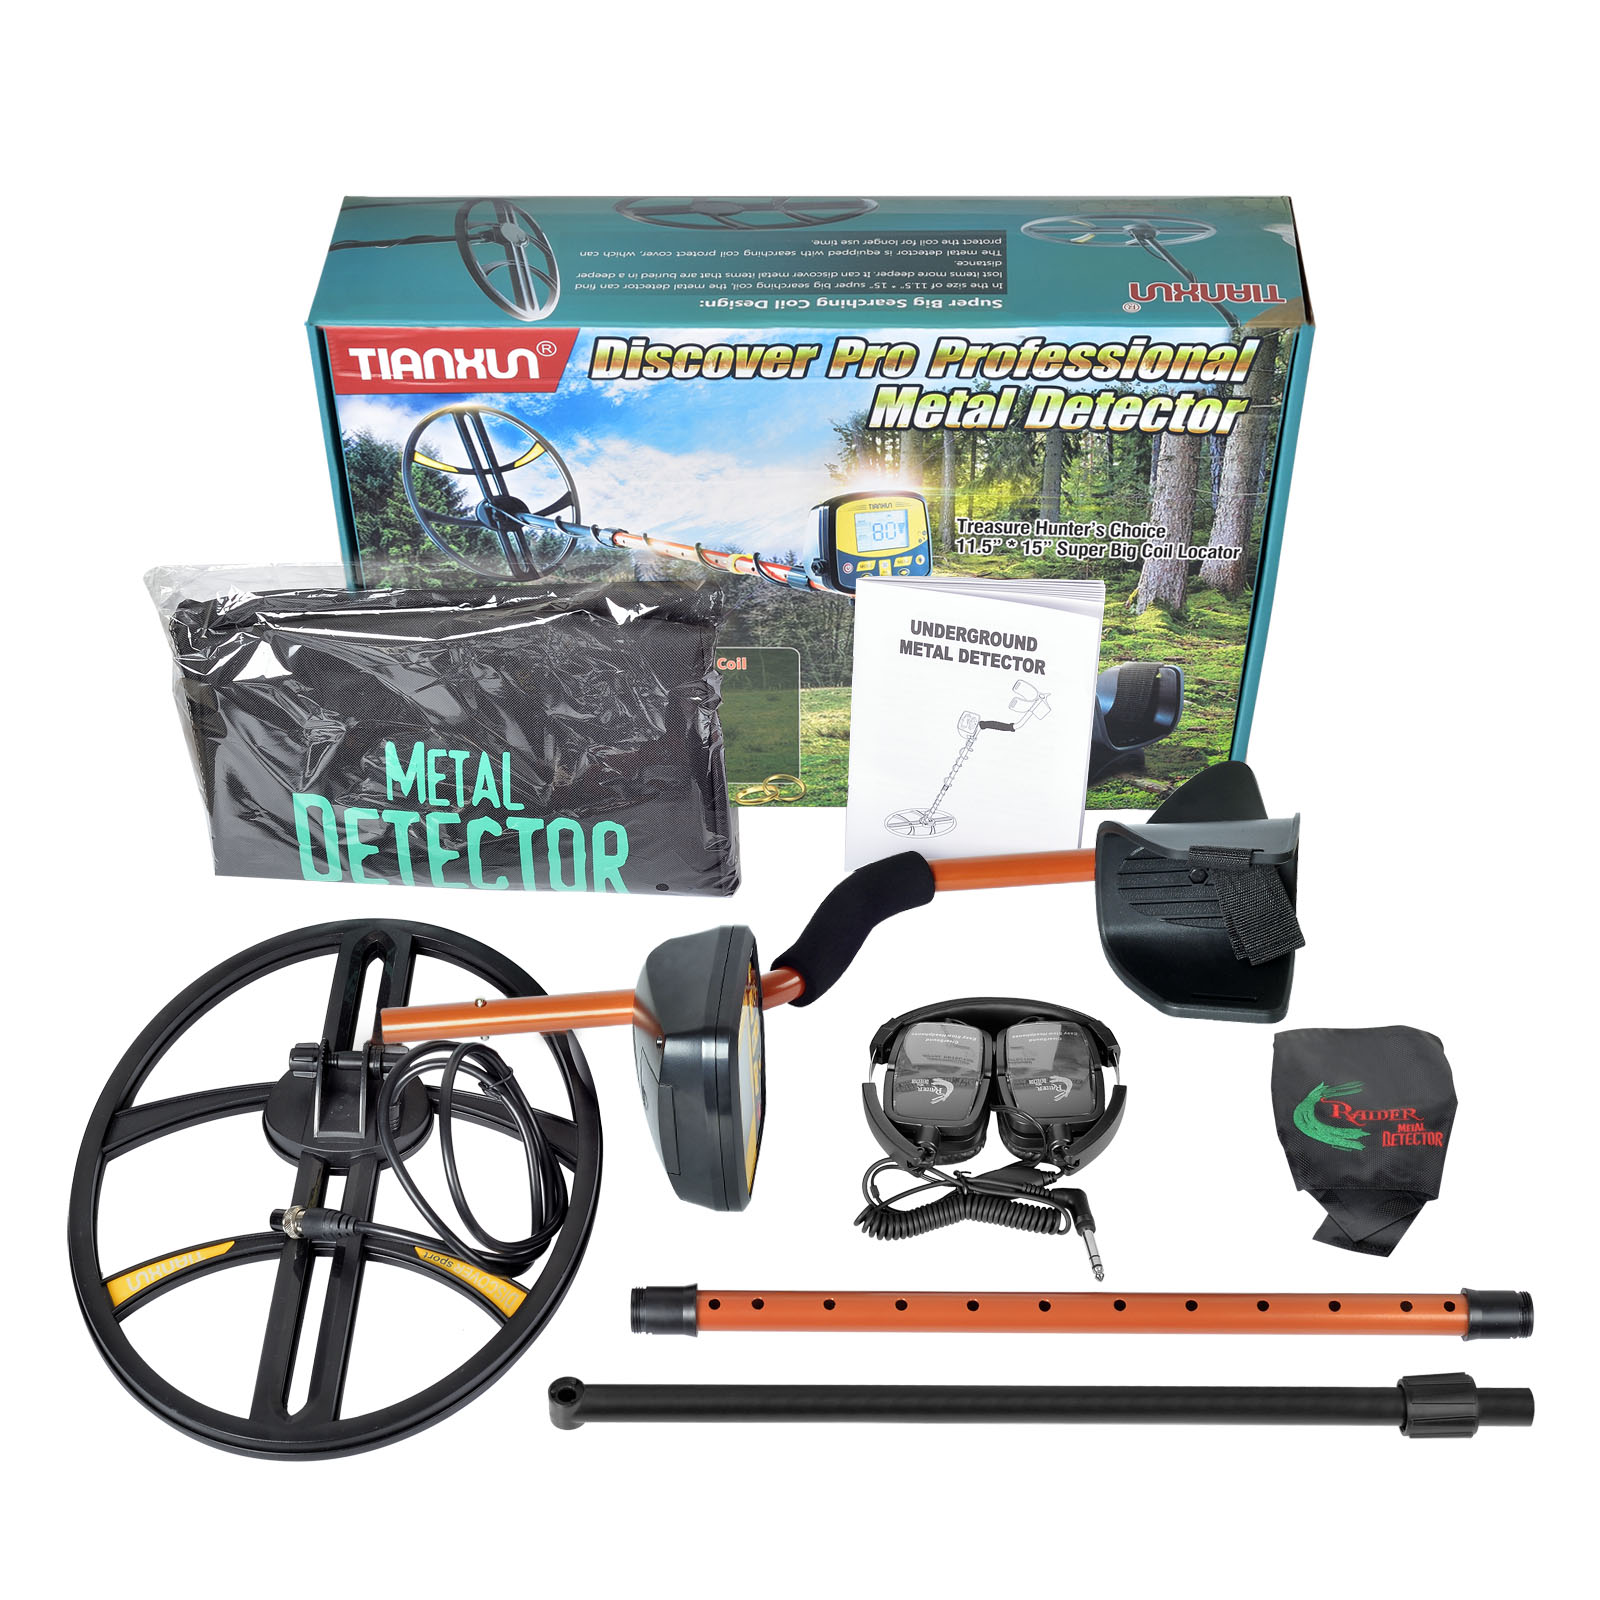 Details about TX-950 Metal Detector w/Waterproof Coil with Headphones ,  Free Shipping